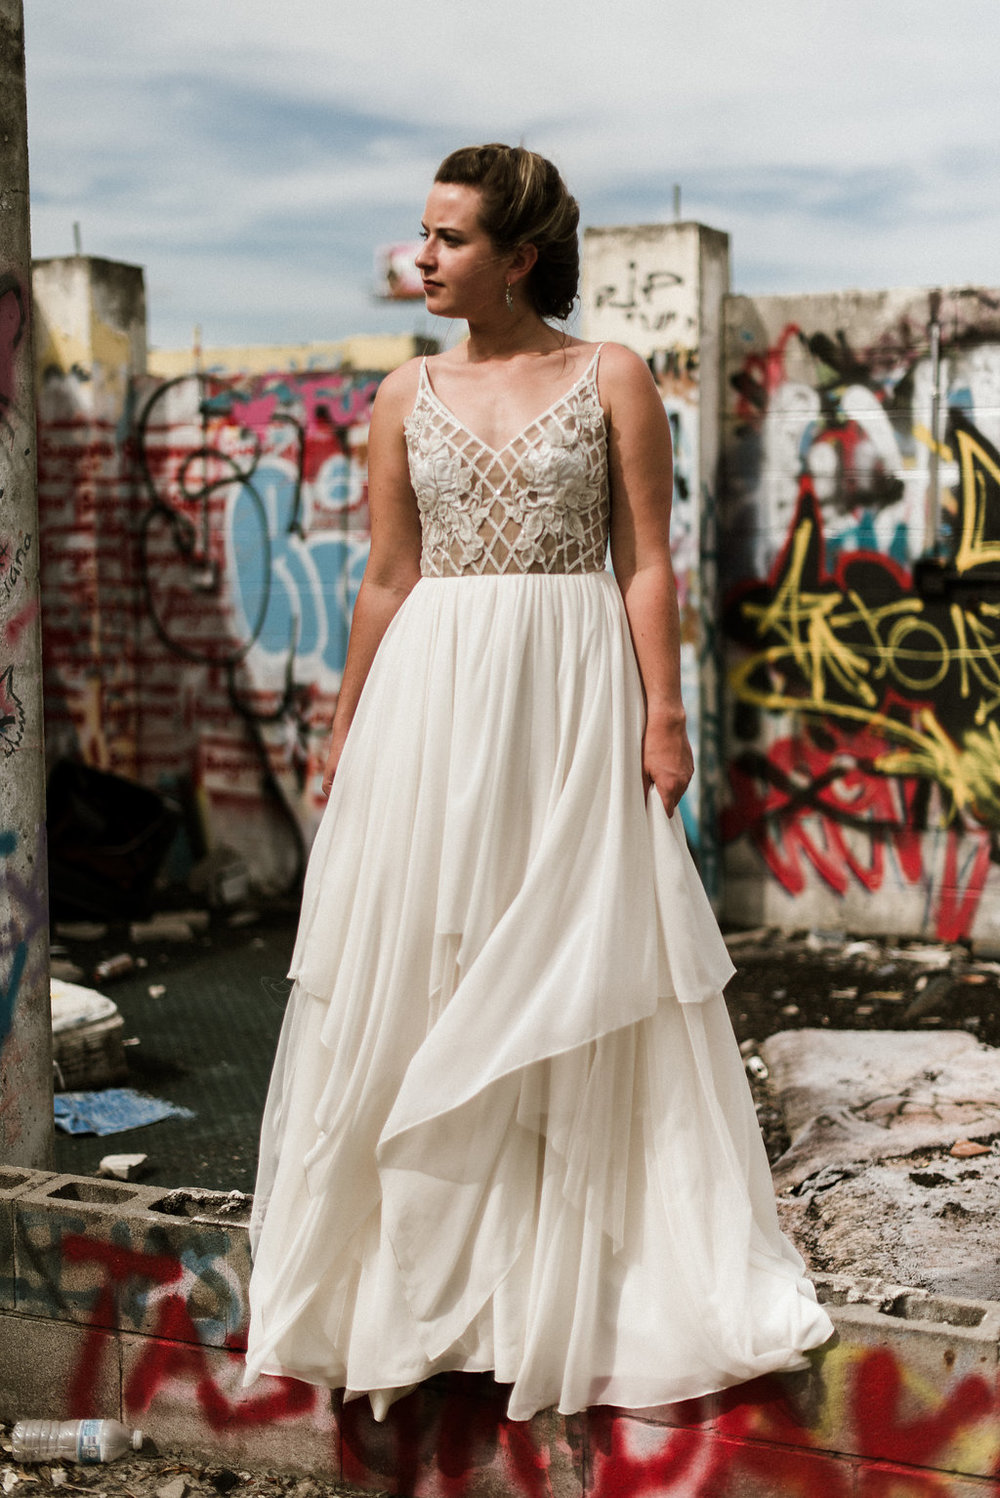 Savannah-Stonehenge-lauren-imus-photography-savannah-wedding-photographer-blush-by-hayley-paige-honeycomb-ivory-and-beau-bridal-boutique-savannah-wedding-dresses-savannah-bridal-boutique-savannah-wedding-planner-savannah-florist-graffiti-wedding-25.jpg